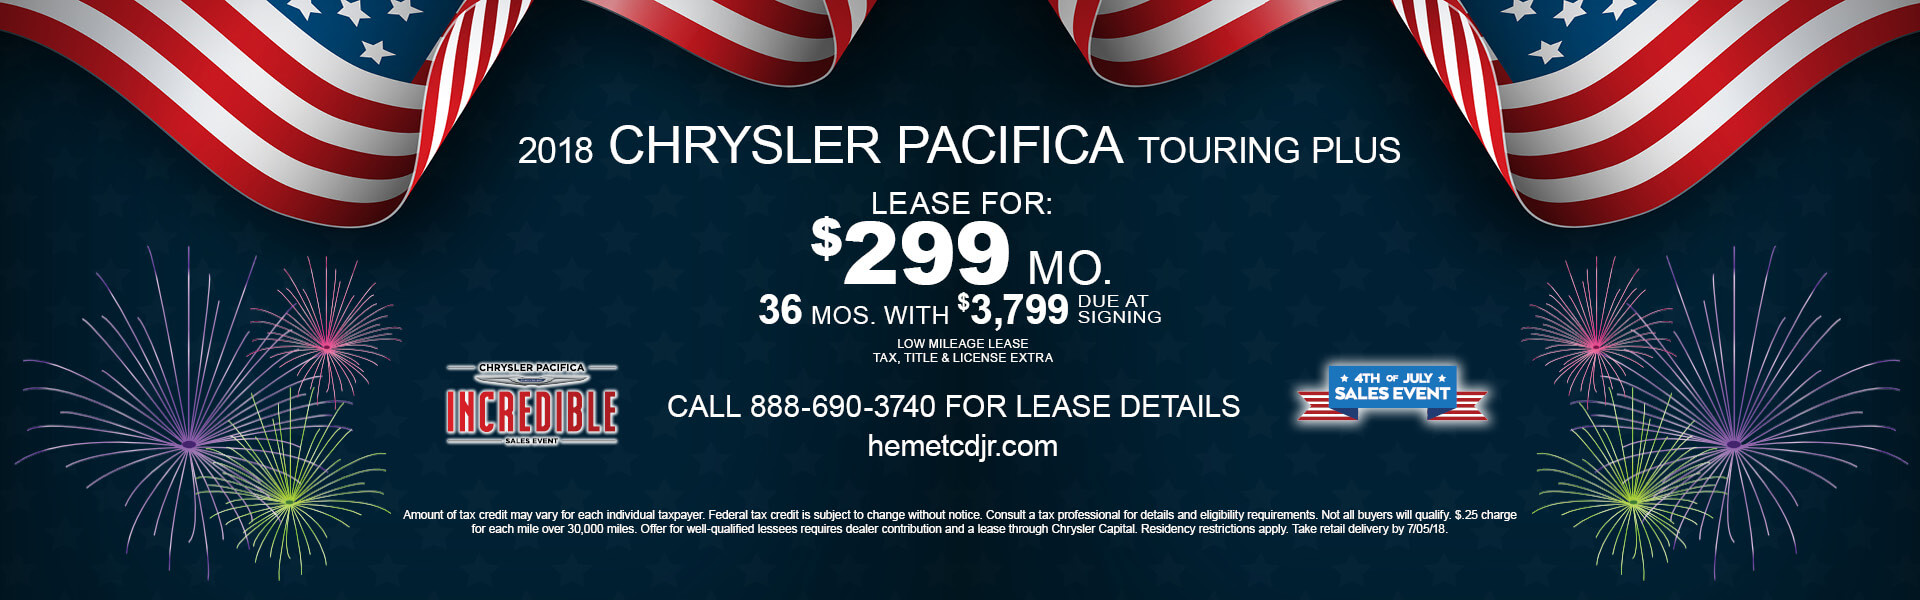 Chrysler Pacifica $299 Lease